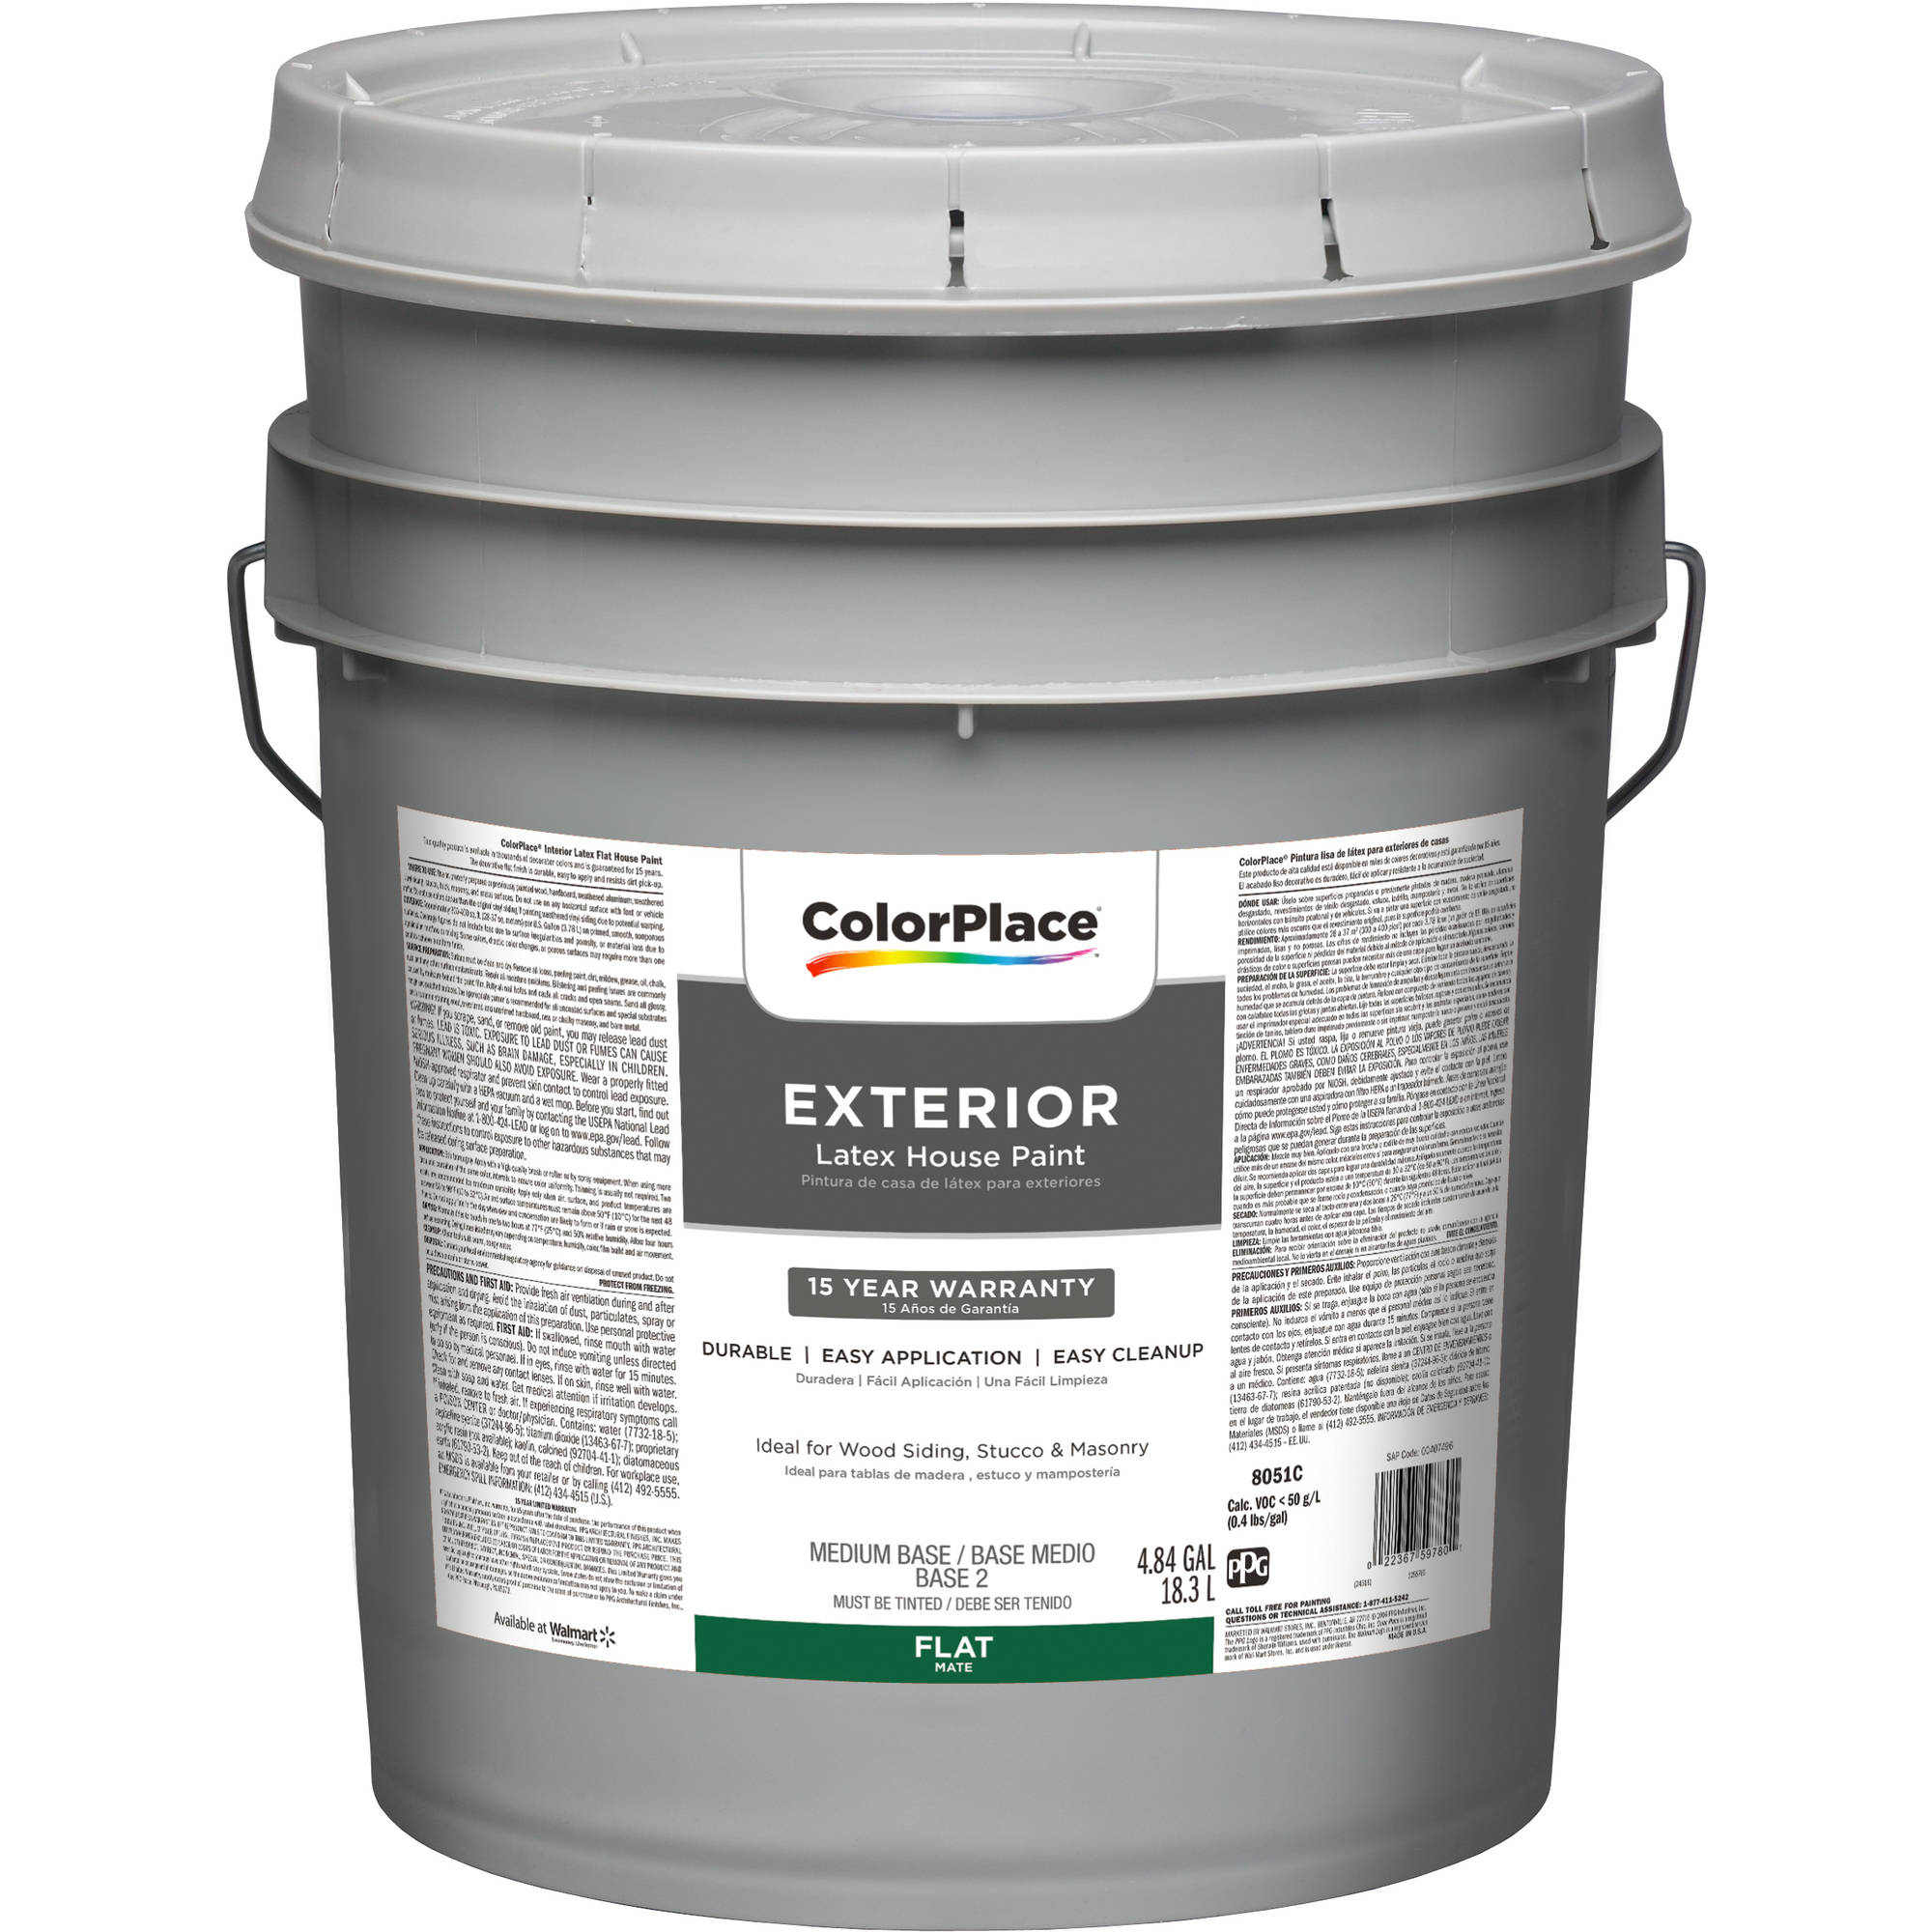 Amazing ColorPlace Exterior Flat Medium Base Paint, 5 Gal